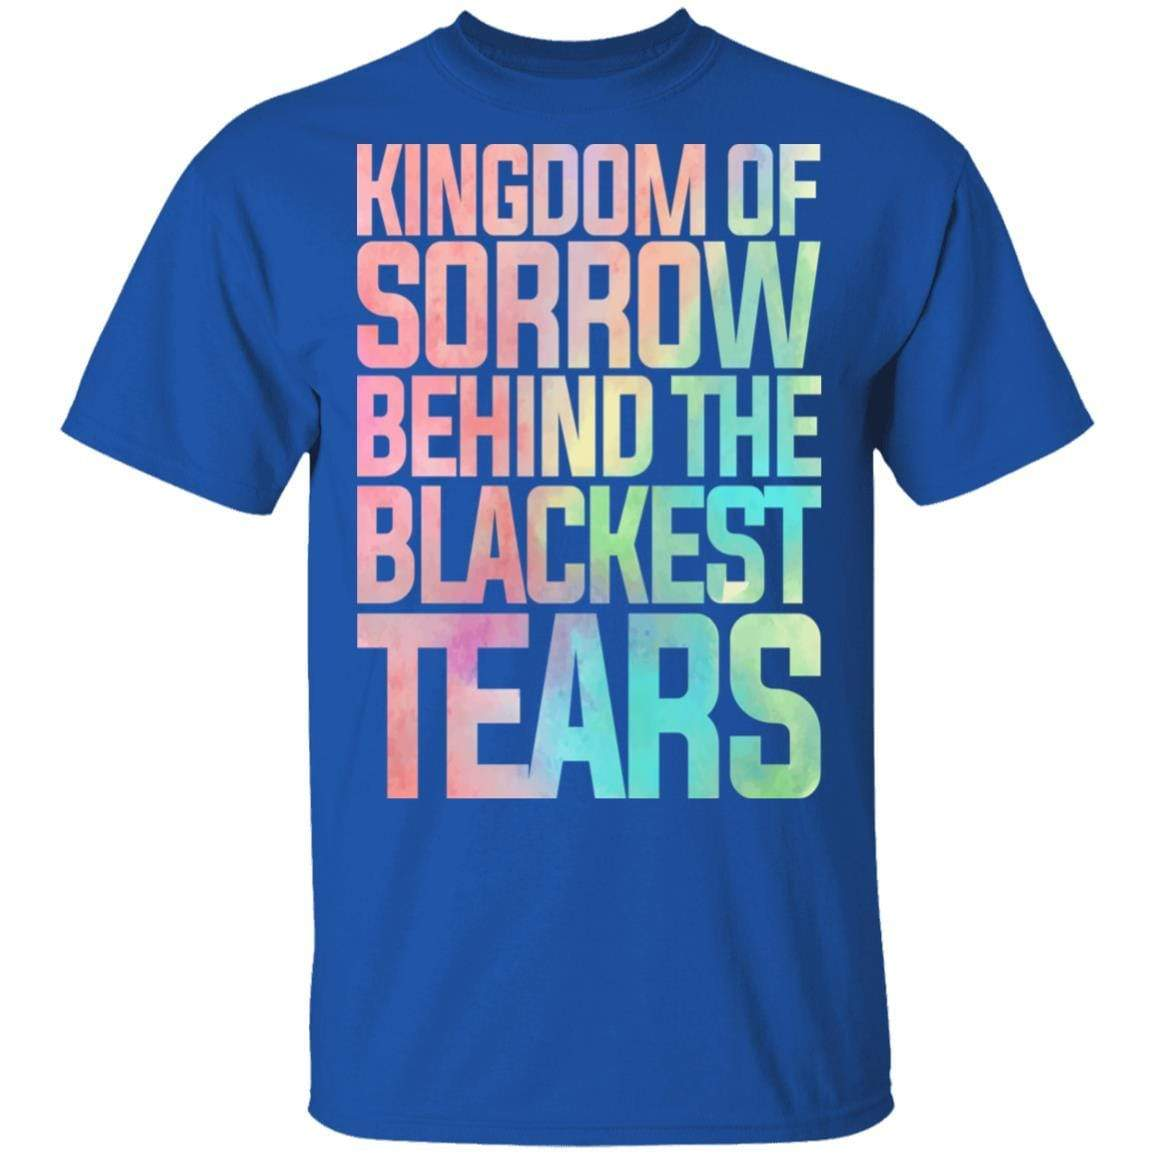 Kingdom Of Sorrow Behind The Blackest Tears T-Shirts, Hoodies 1049-9971-87589179-48286 - Tee Ript